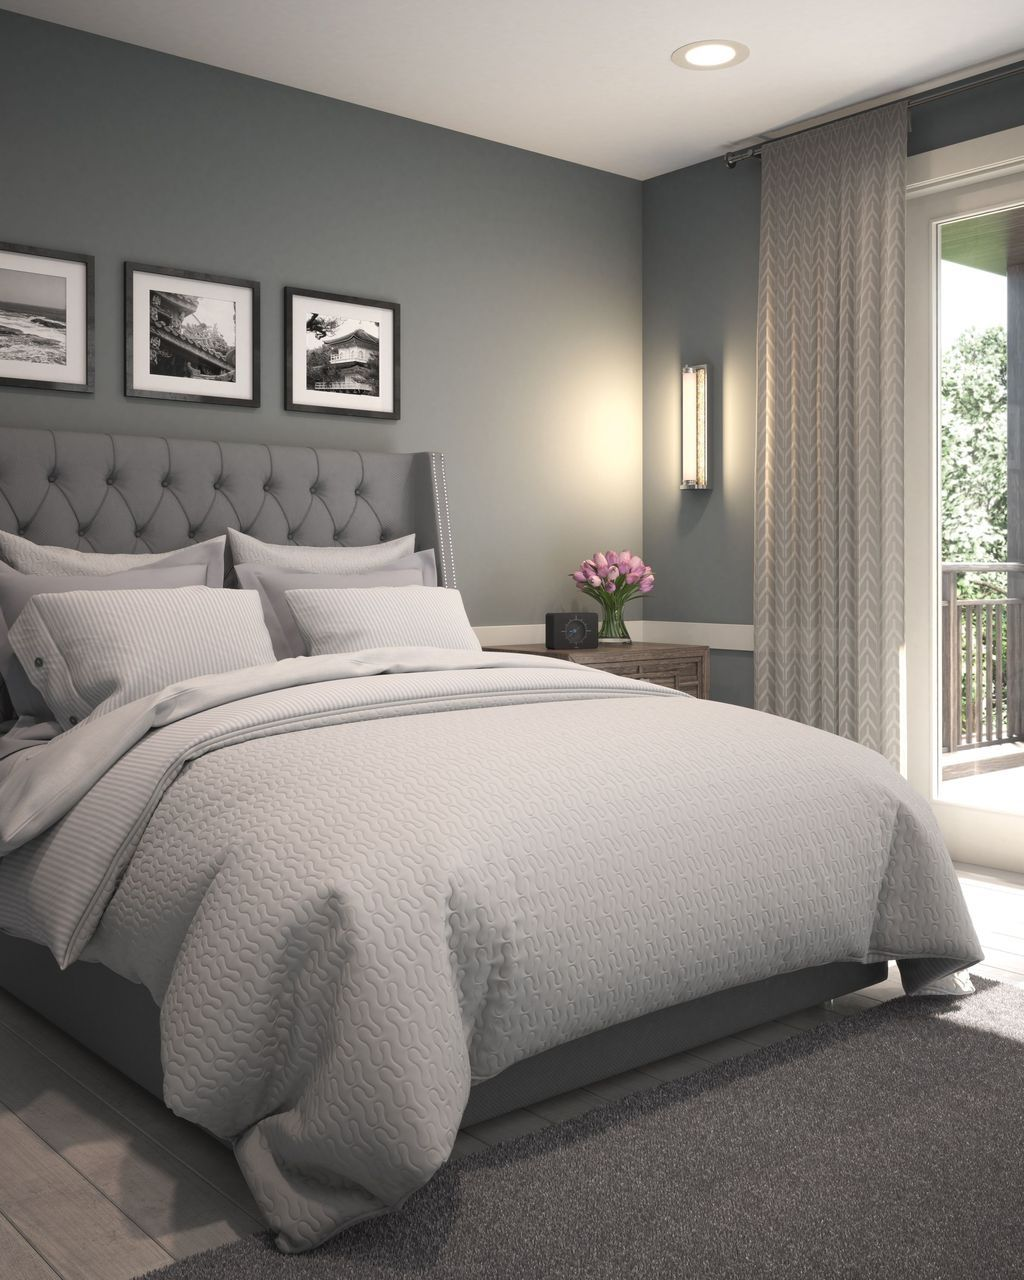 Grey Master Bedroom: 44 Stunning Grey Bedroom Decor Ideas In 2020